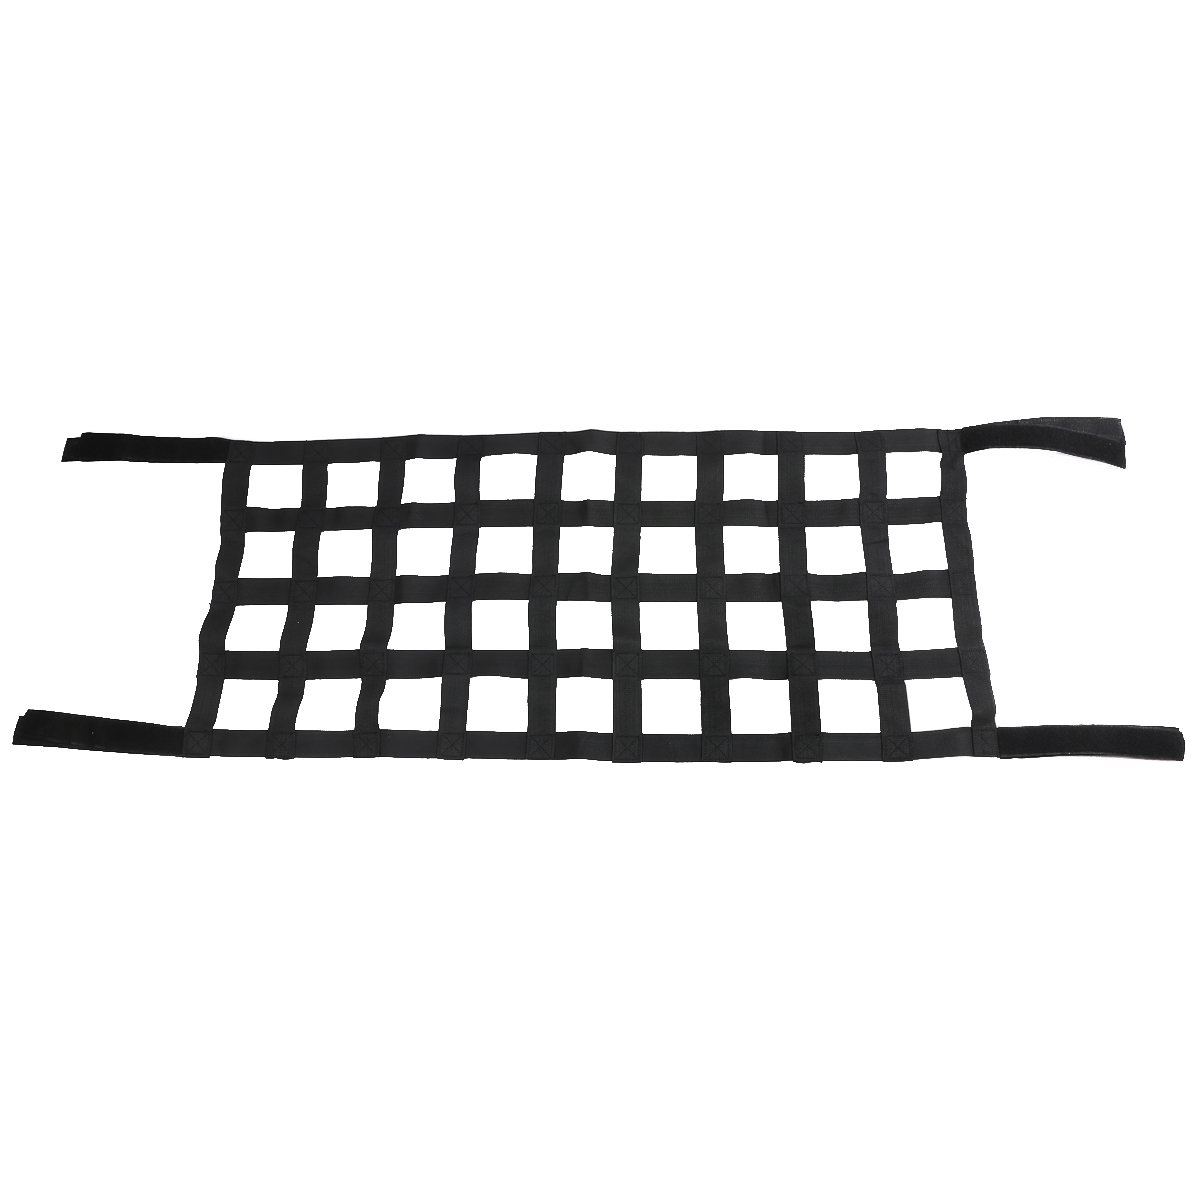 Mayitr 1pc Durable Mesh Car Top Roof Hammock High Quality Car Exterior Rest Bed Cargo Net For Jeep Wrangler Jl Jk 2007-2018